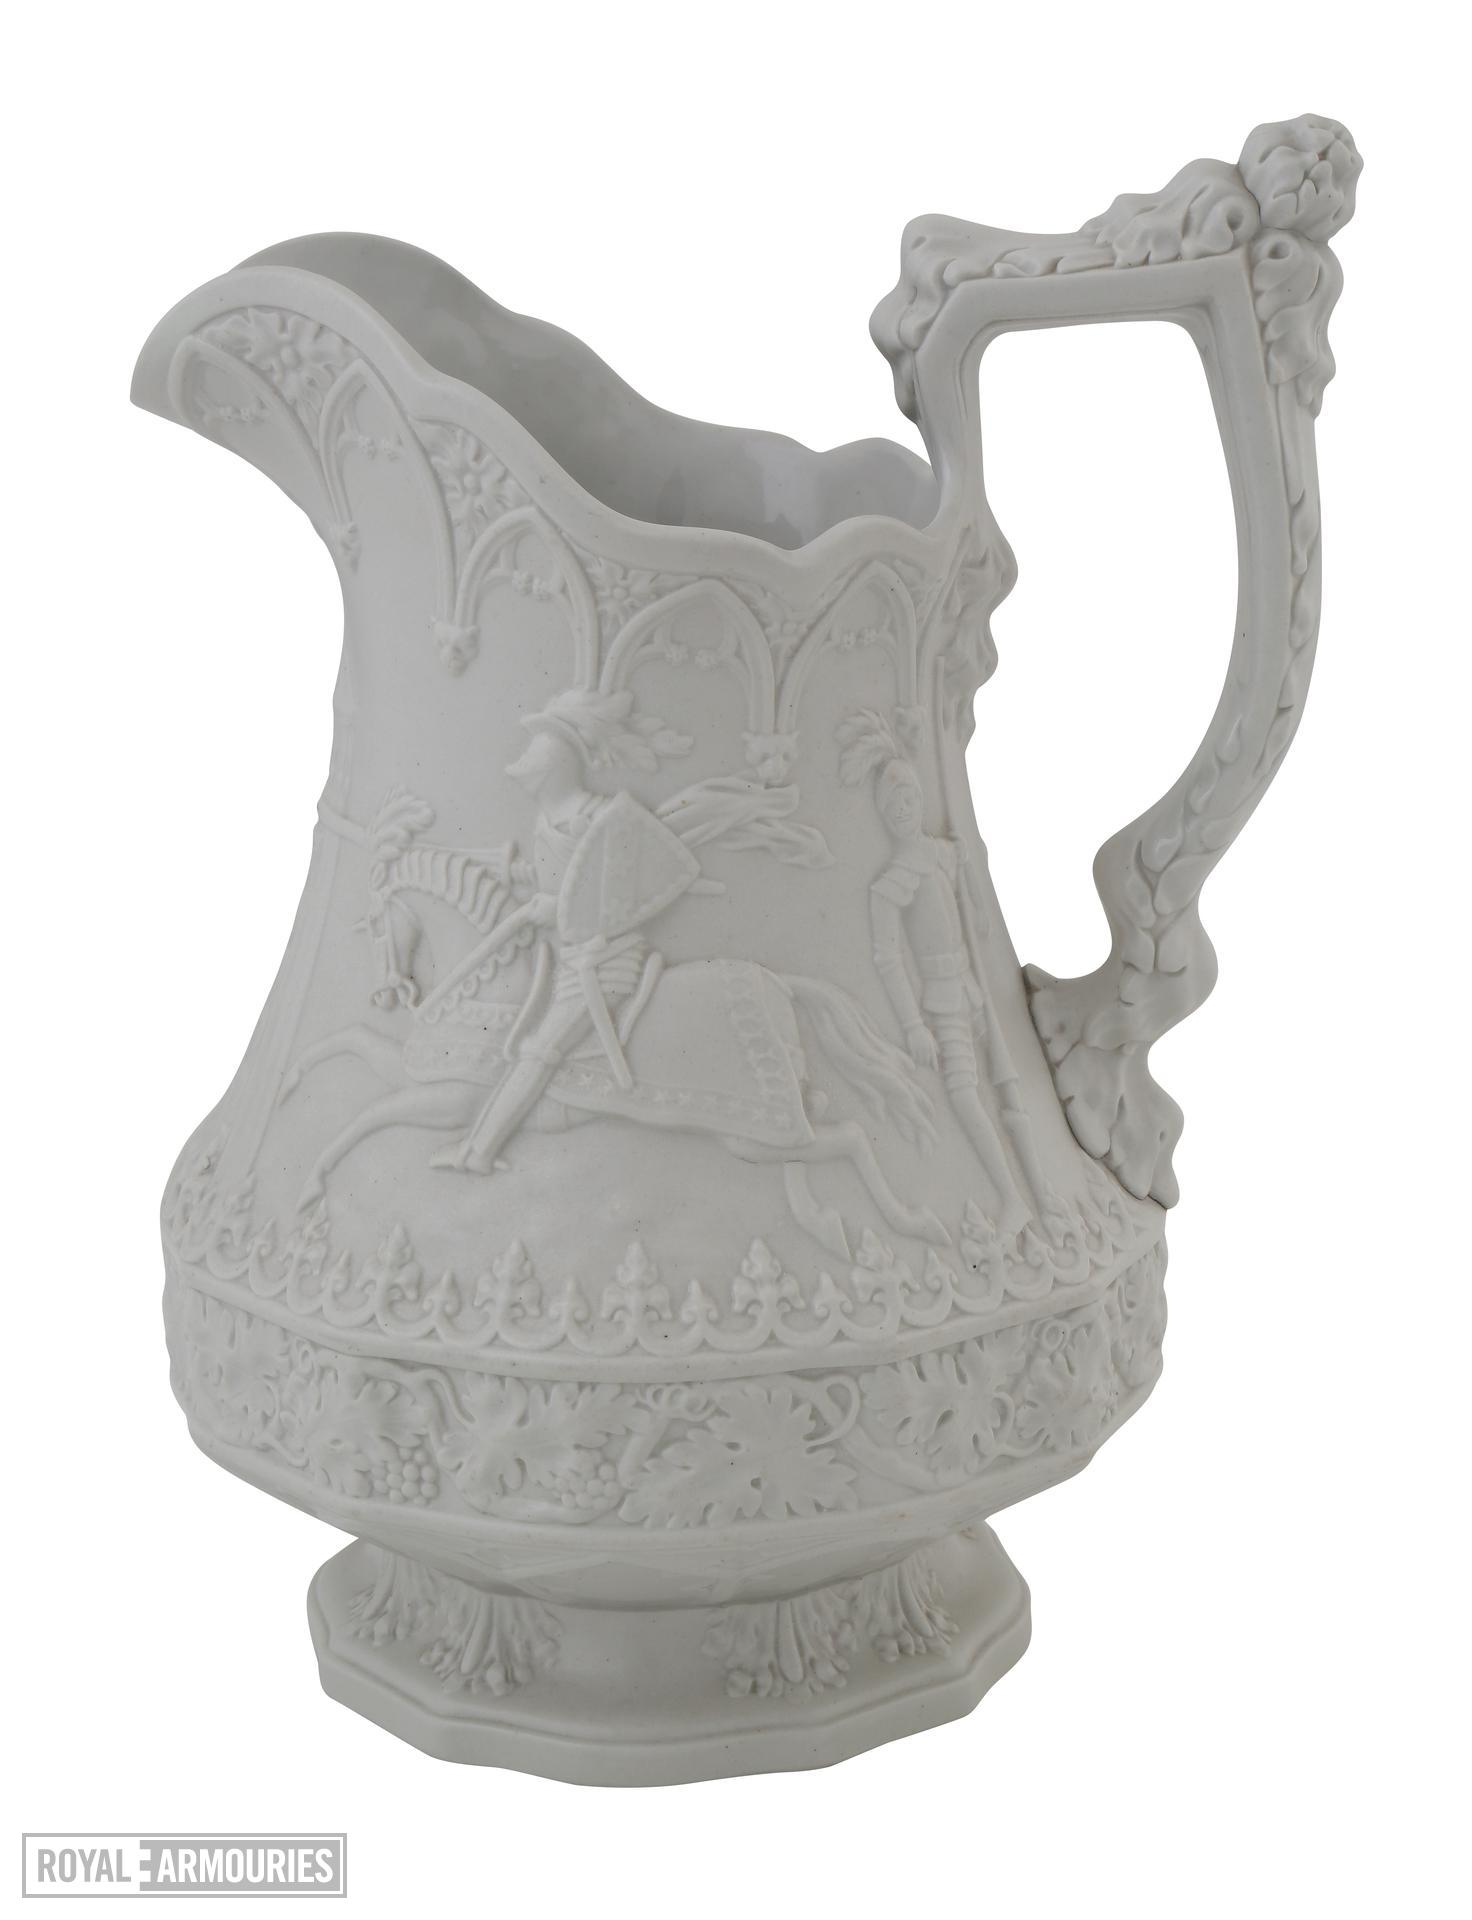 Relief moulded, white stoneware jug showing scenes of jousting knights, a souvenir of the Eglinton Tournament of 1839. Marked as made by 'William Ridgway Son and Company'. Hanley, Staffordshire, 1840 XVIII.899